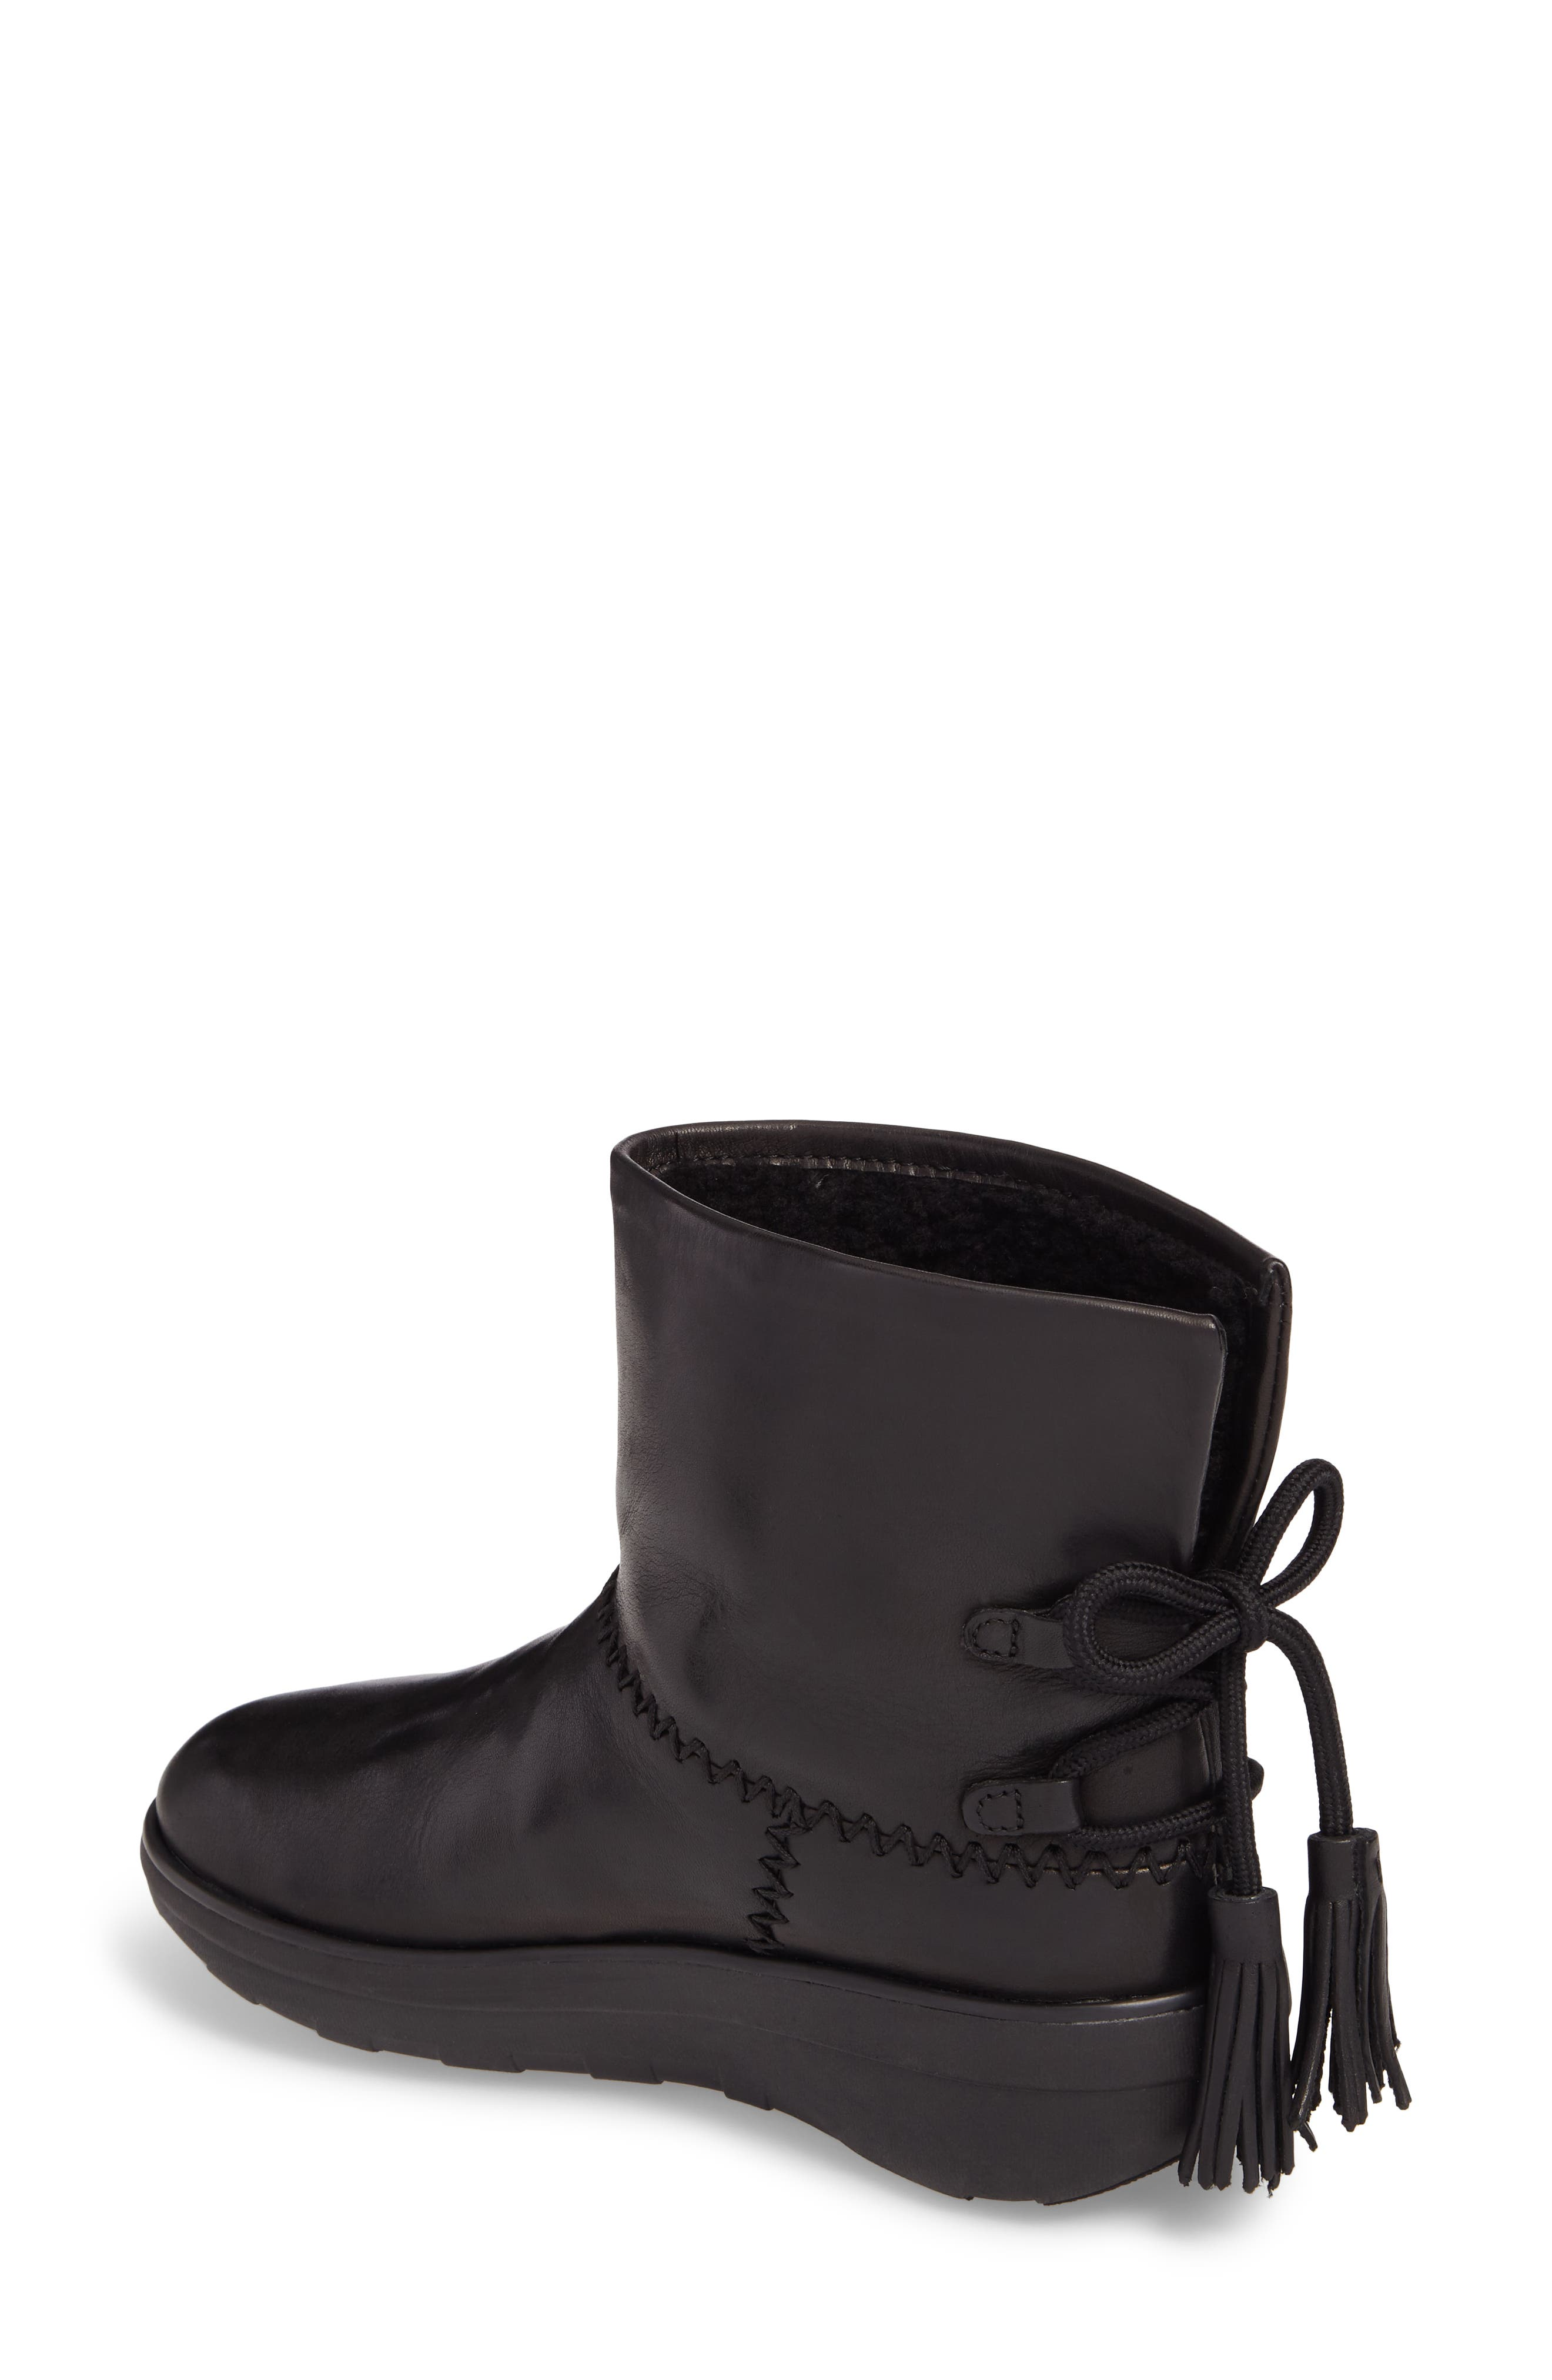 Mukluk Shorty II Boot with Genuine Shearling Lining,                             Alternate thumbnail 2, color,                             001